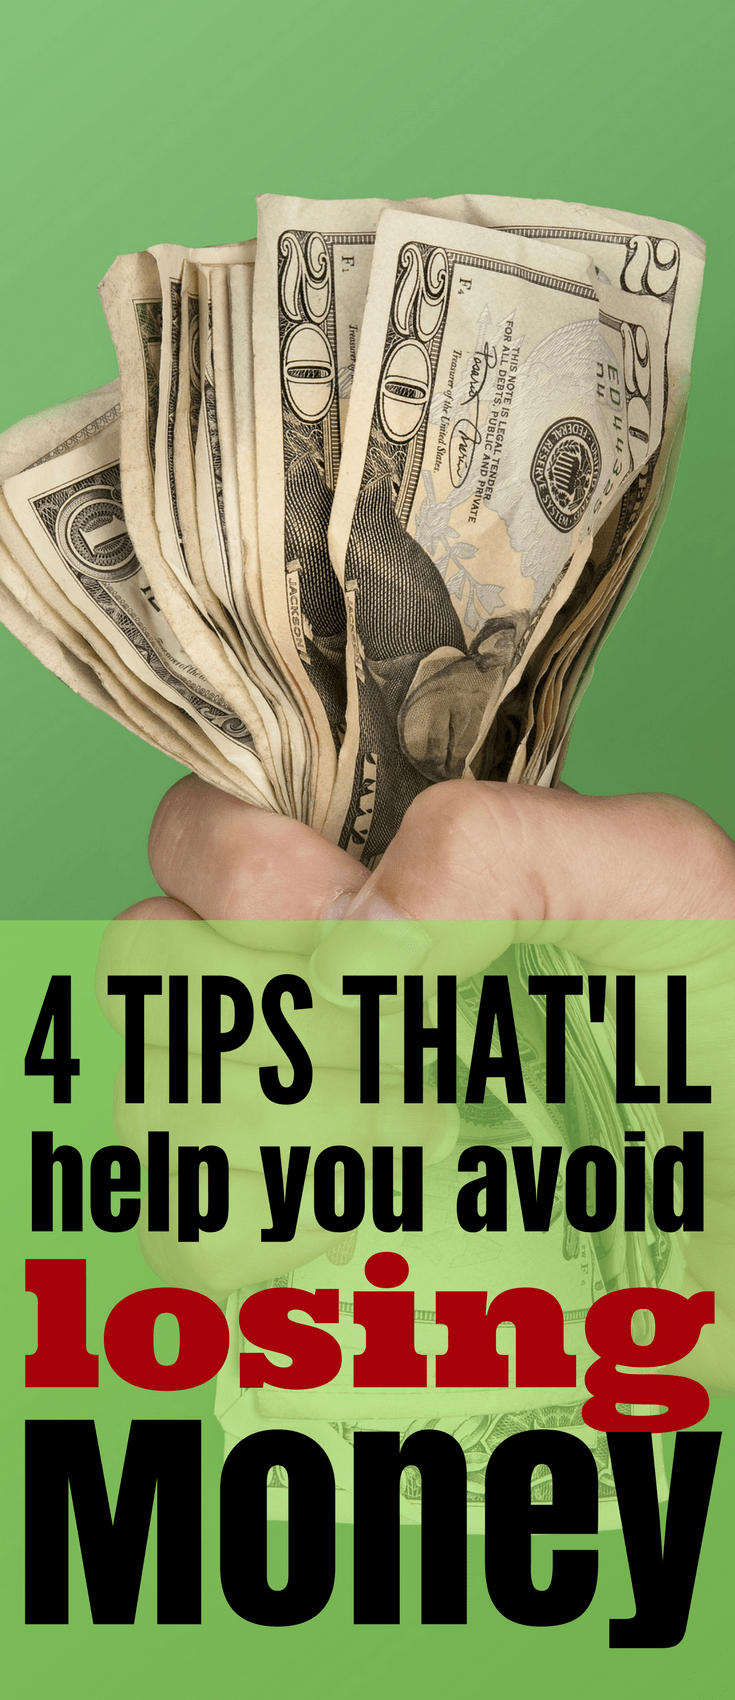 4 Tips That Will Help You Avoid Losing Money